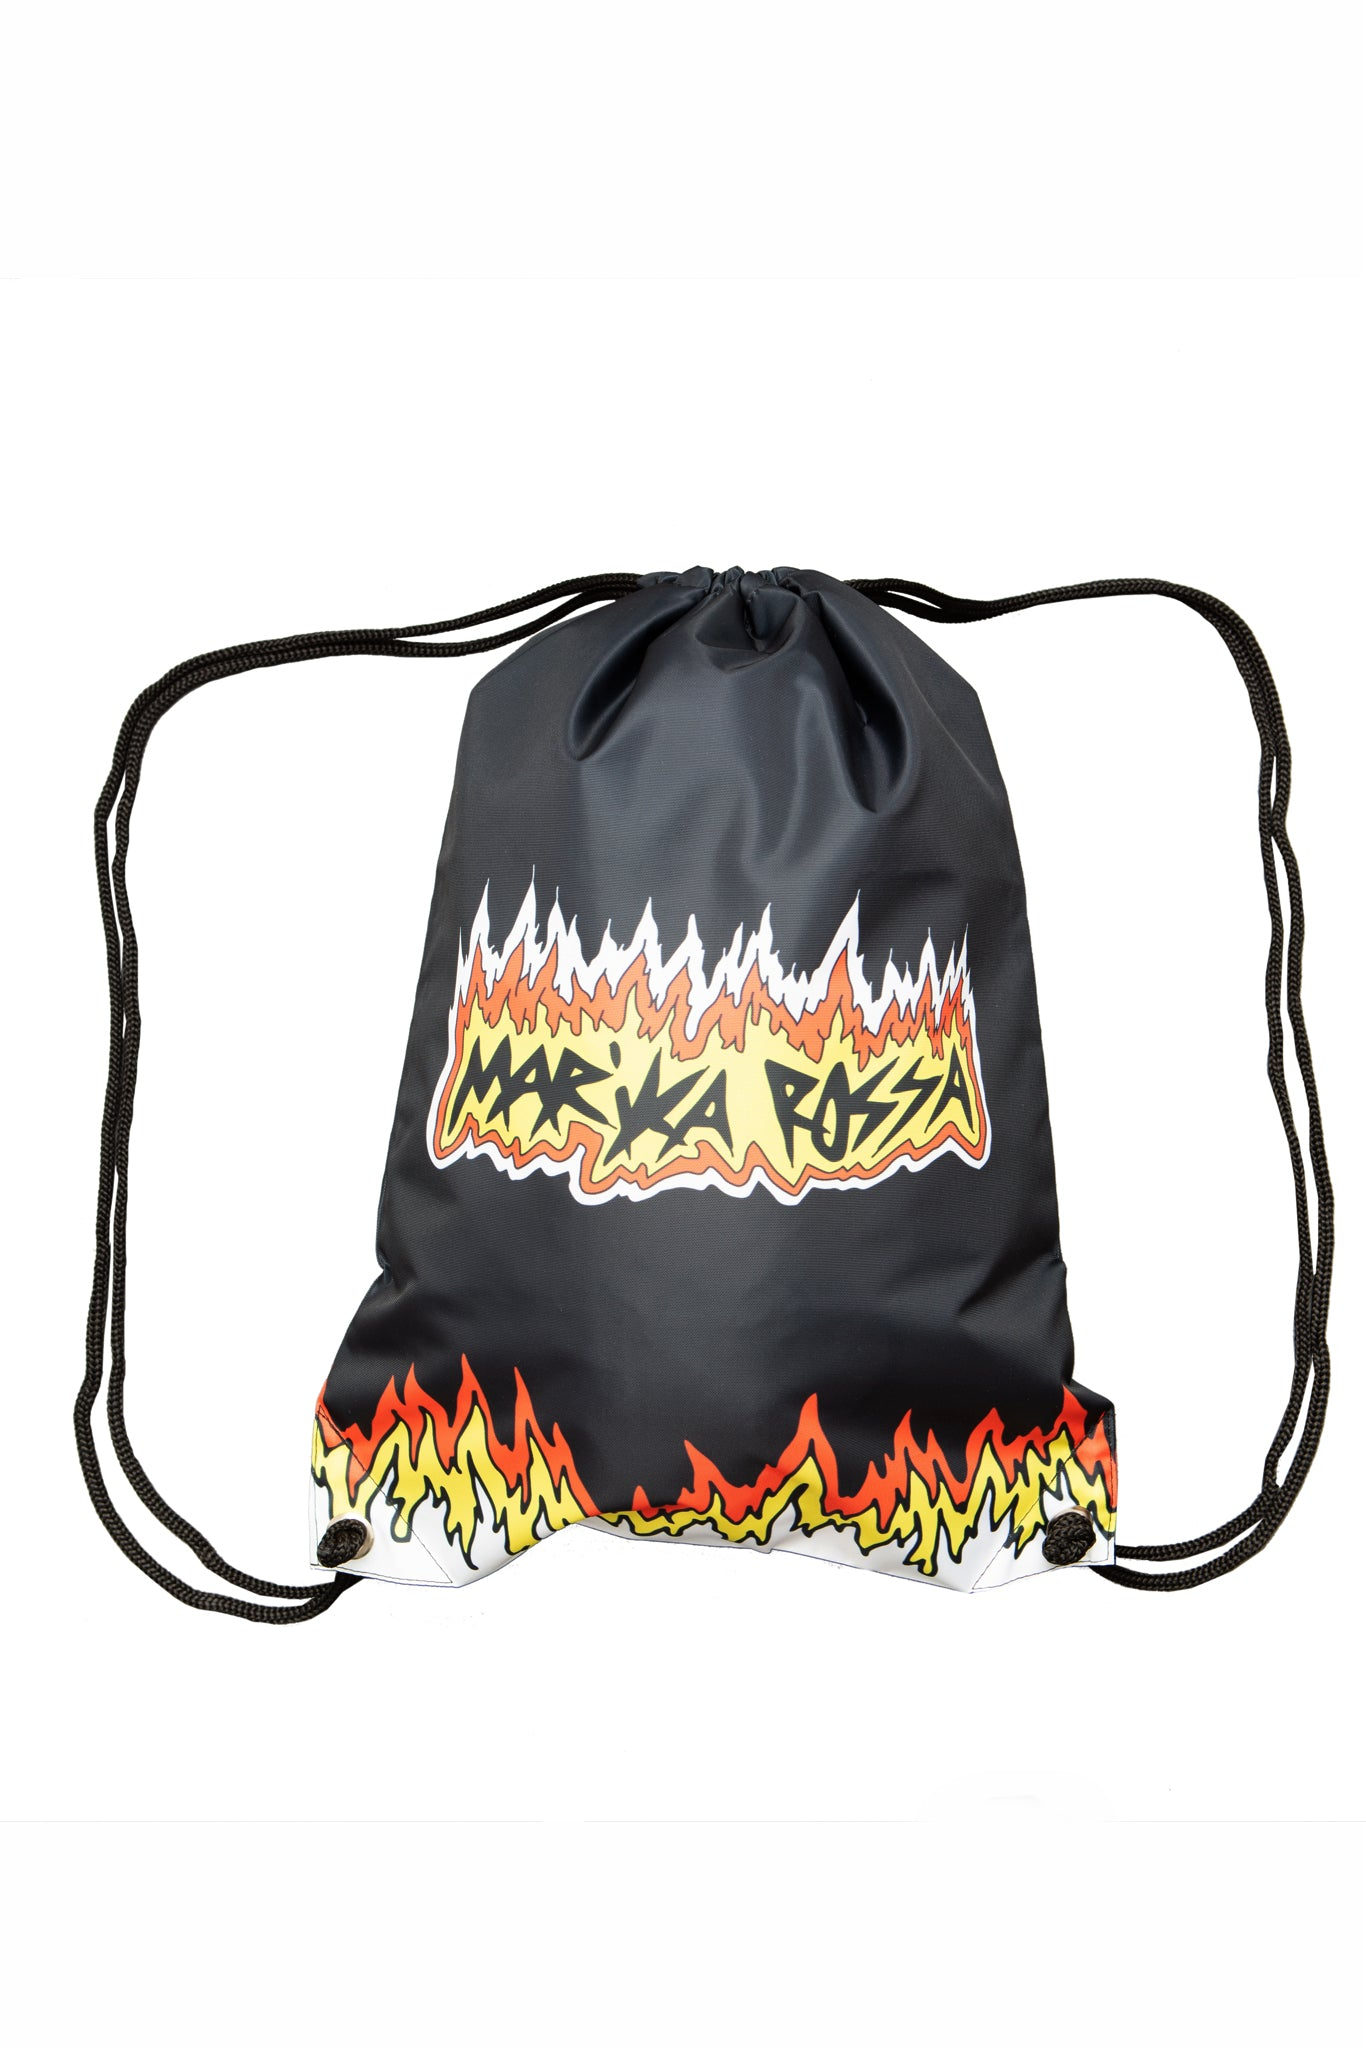 Marika Rossa Fire Backpacks